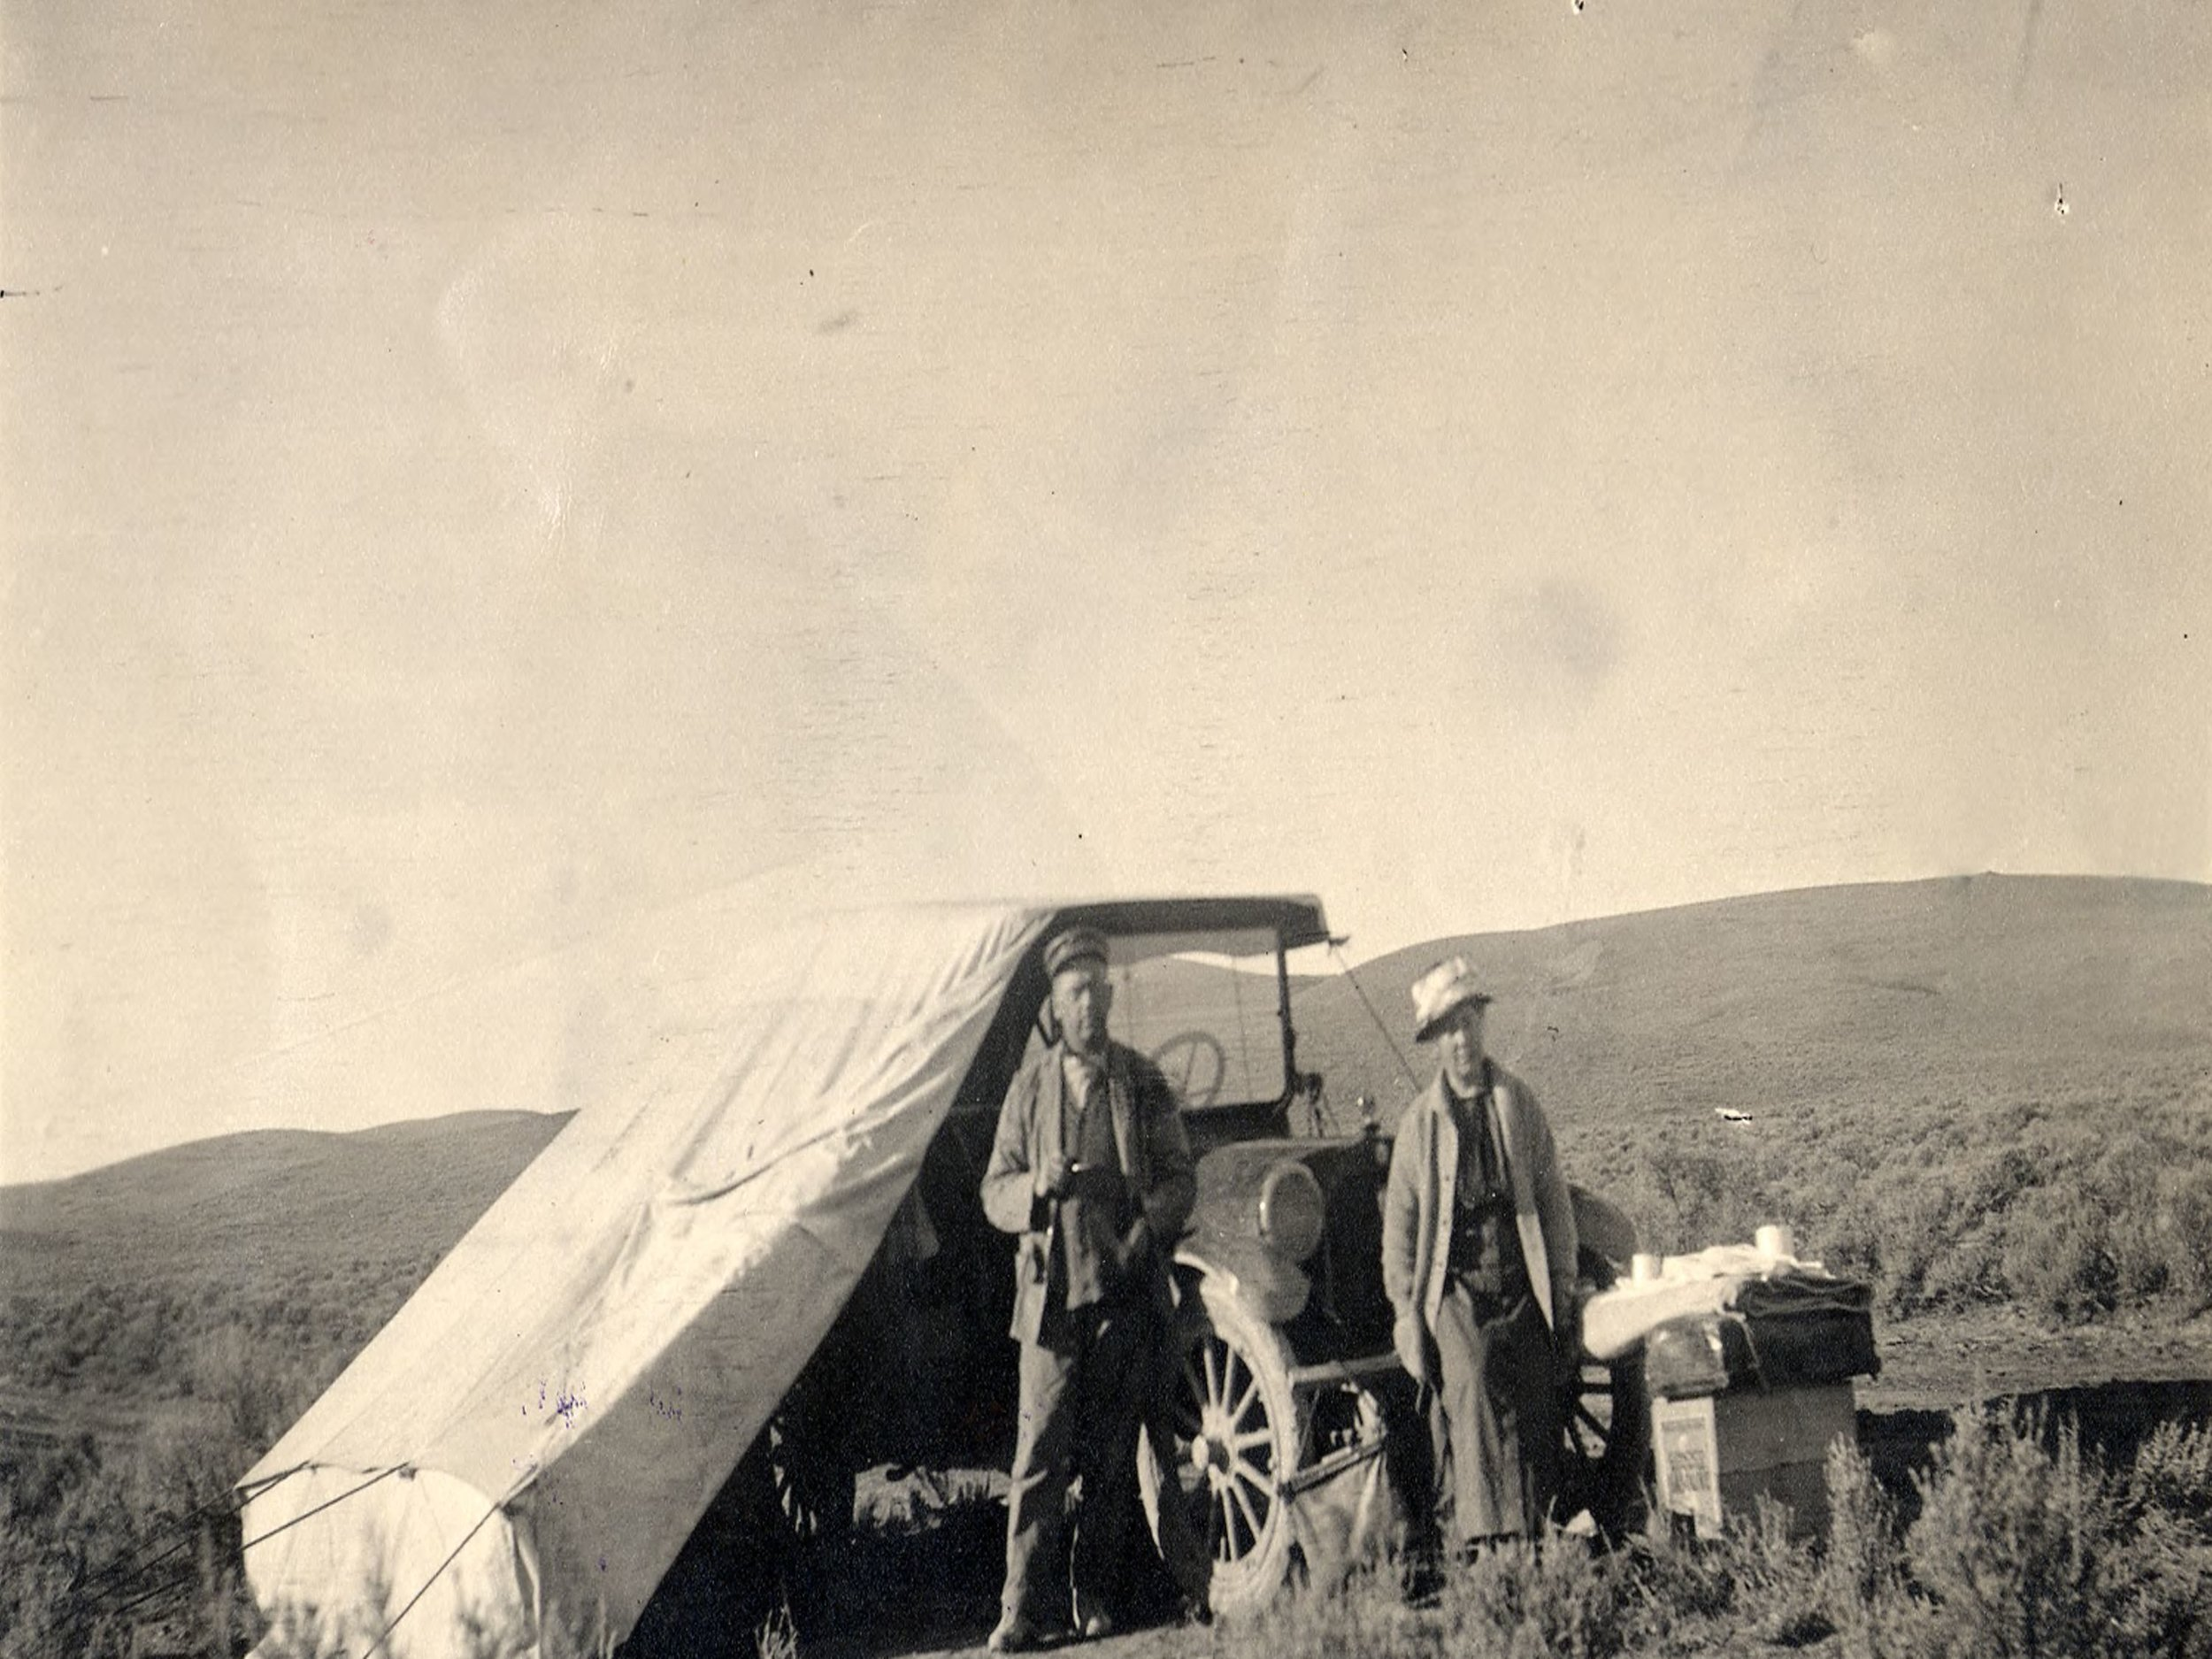 Camping, 1914, showing a pre-WWI automobile outfitted with a tent.  Image/ Special Collections Department, University of Nevada, Reno, Libraries.